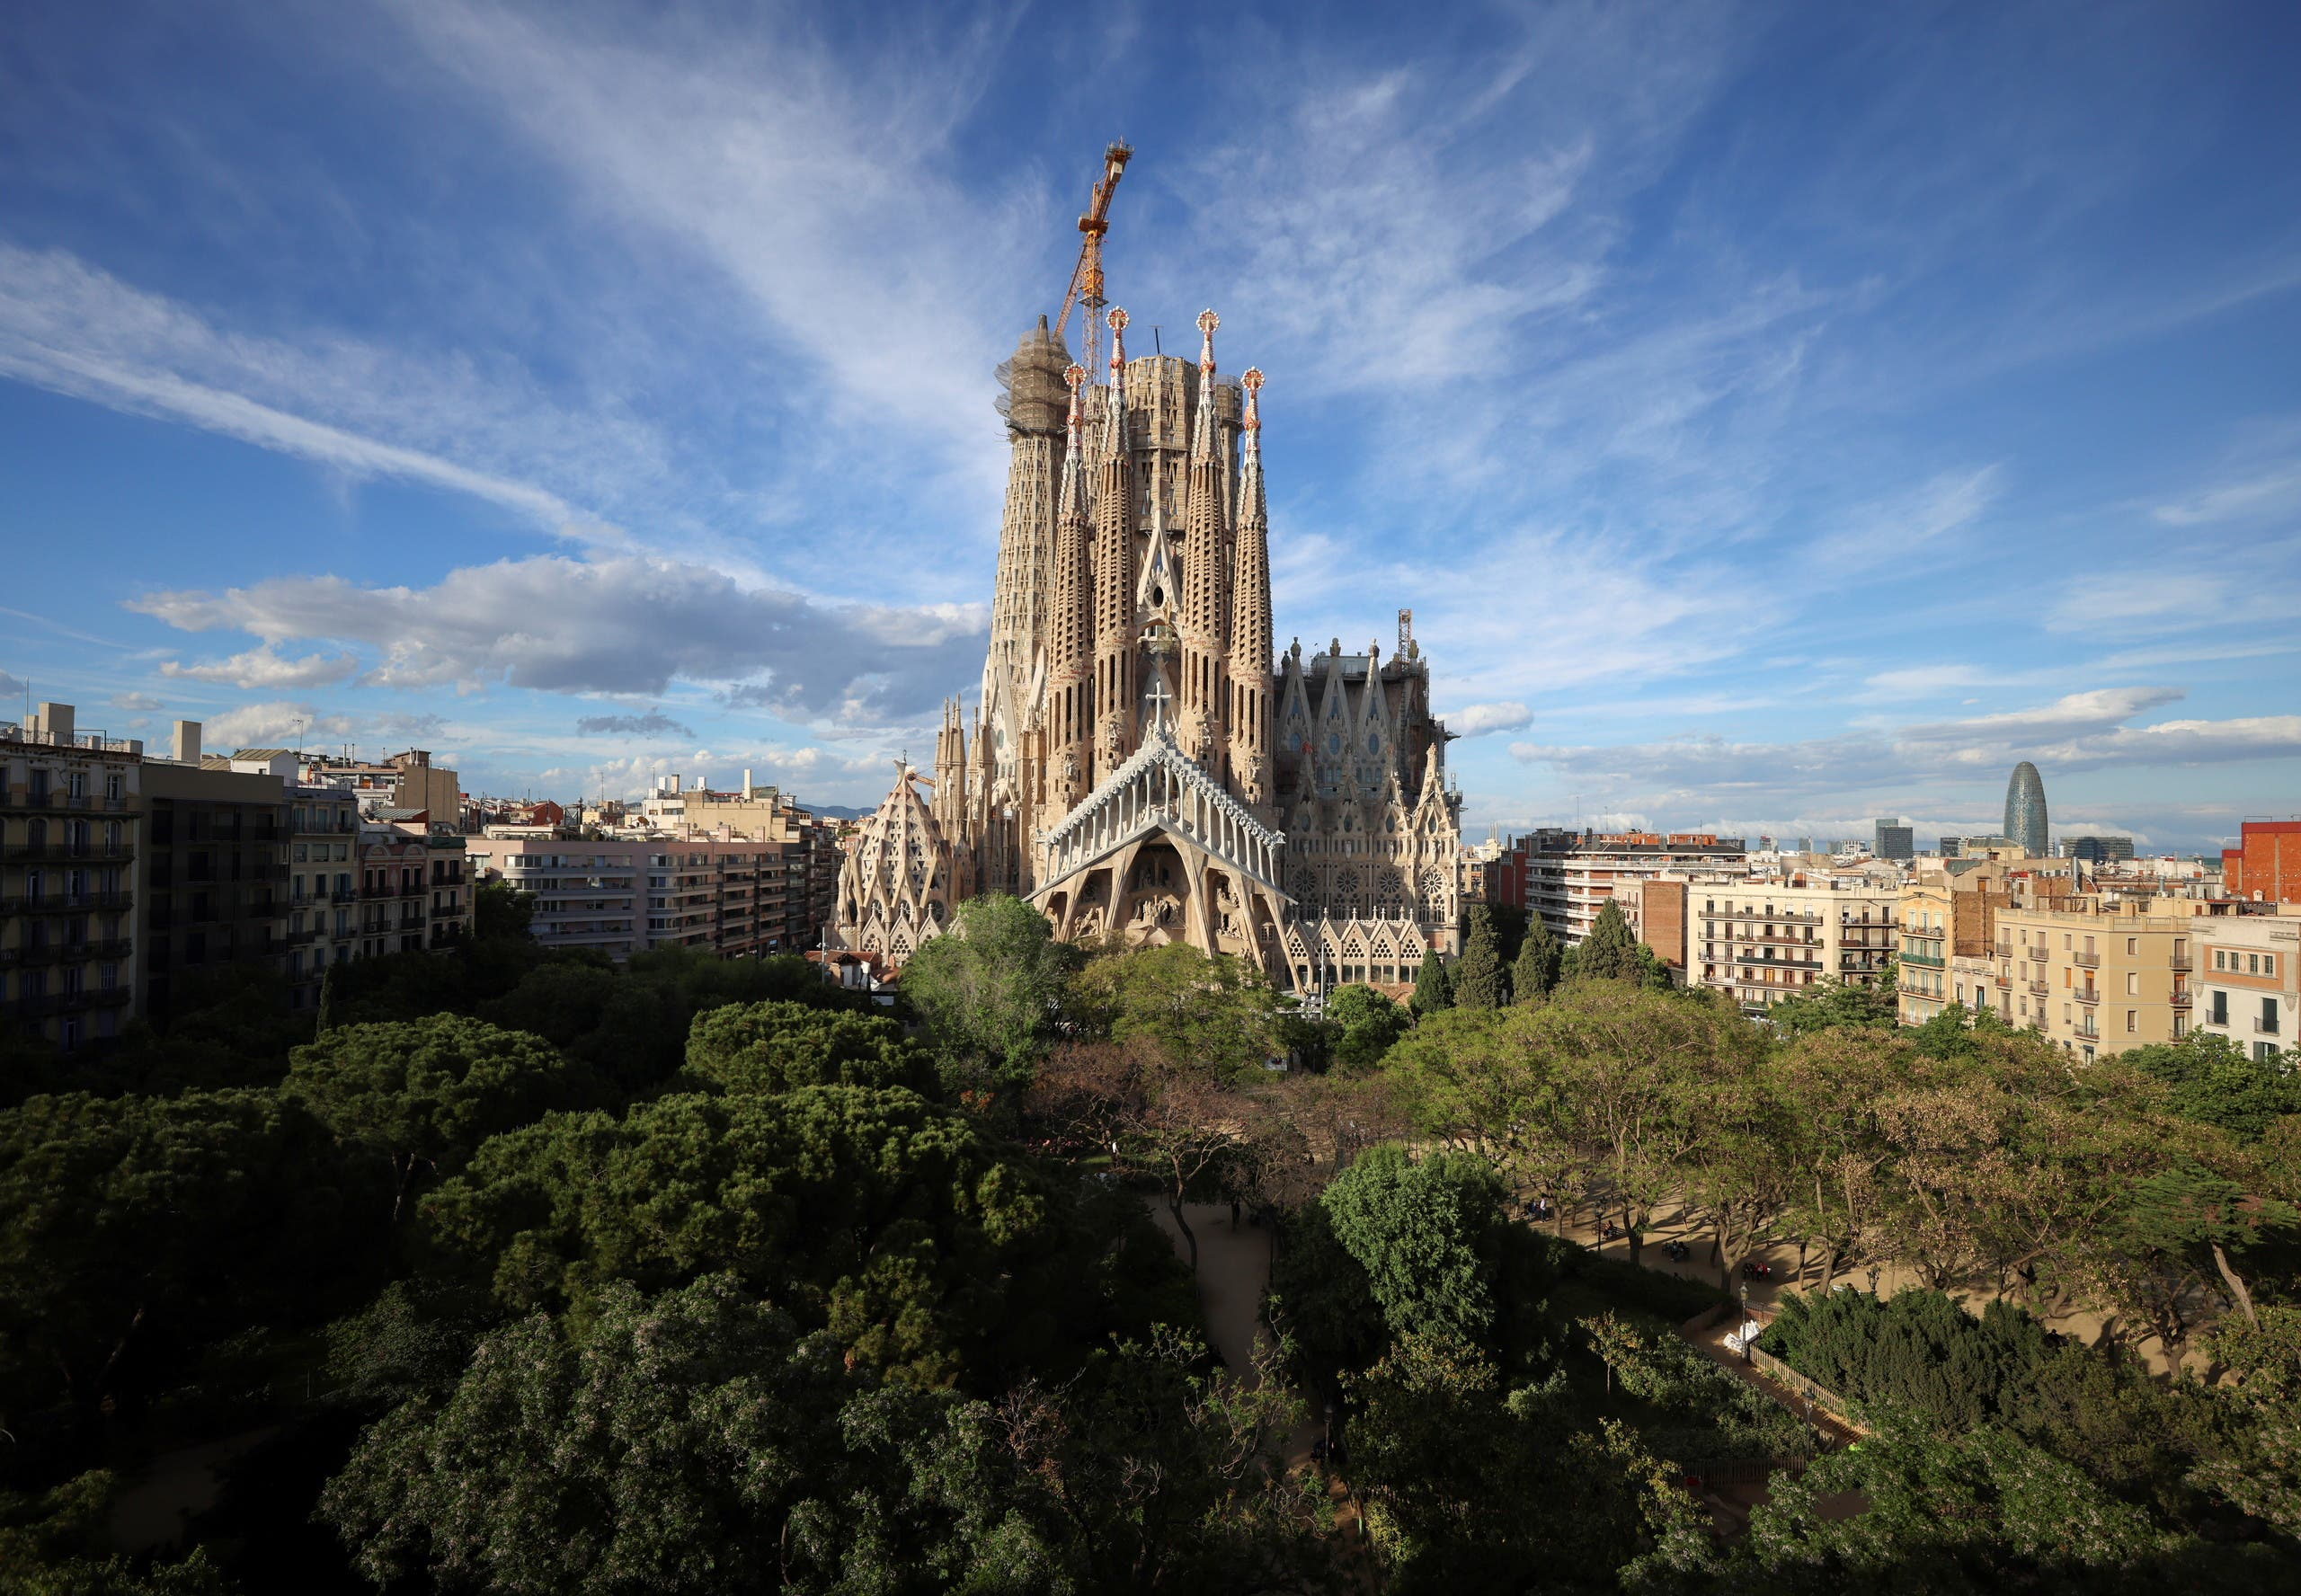 The landmark of Sagrada Familia basilica, called Facade of Passion is seen, closed since October of last year, delaying its target of finishing construction by 2026, amid the coronavirus disease (COVID-19) pandemic in Barcelona Spain, May 24, 2021. (Reuters)